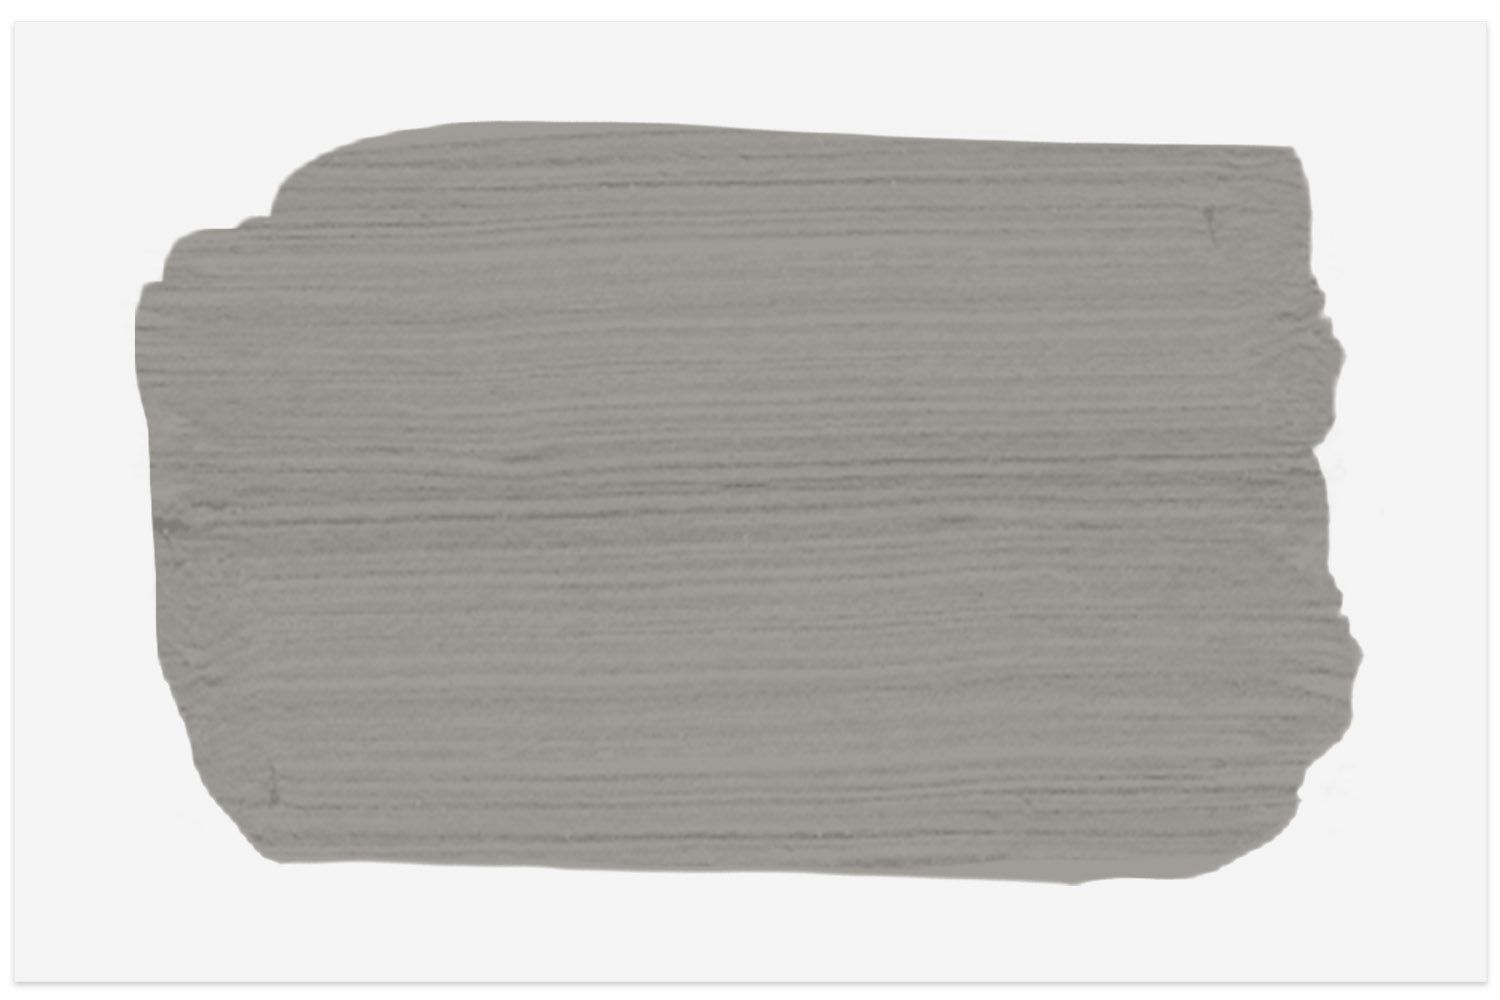 Casual Gray BNC-17 paint swatch from Behr